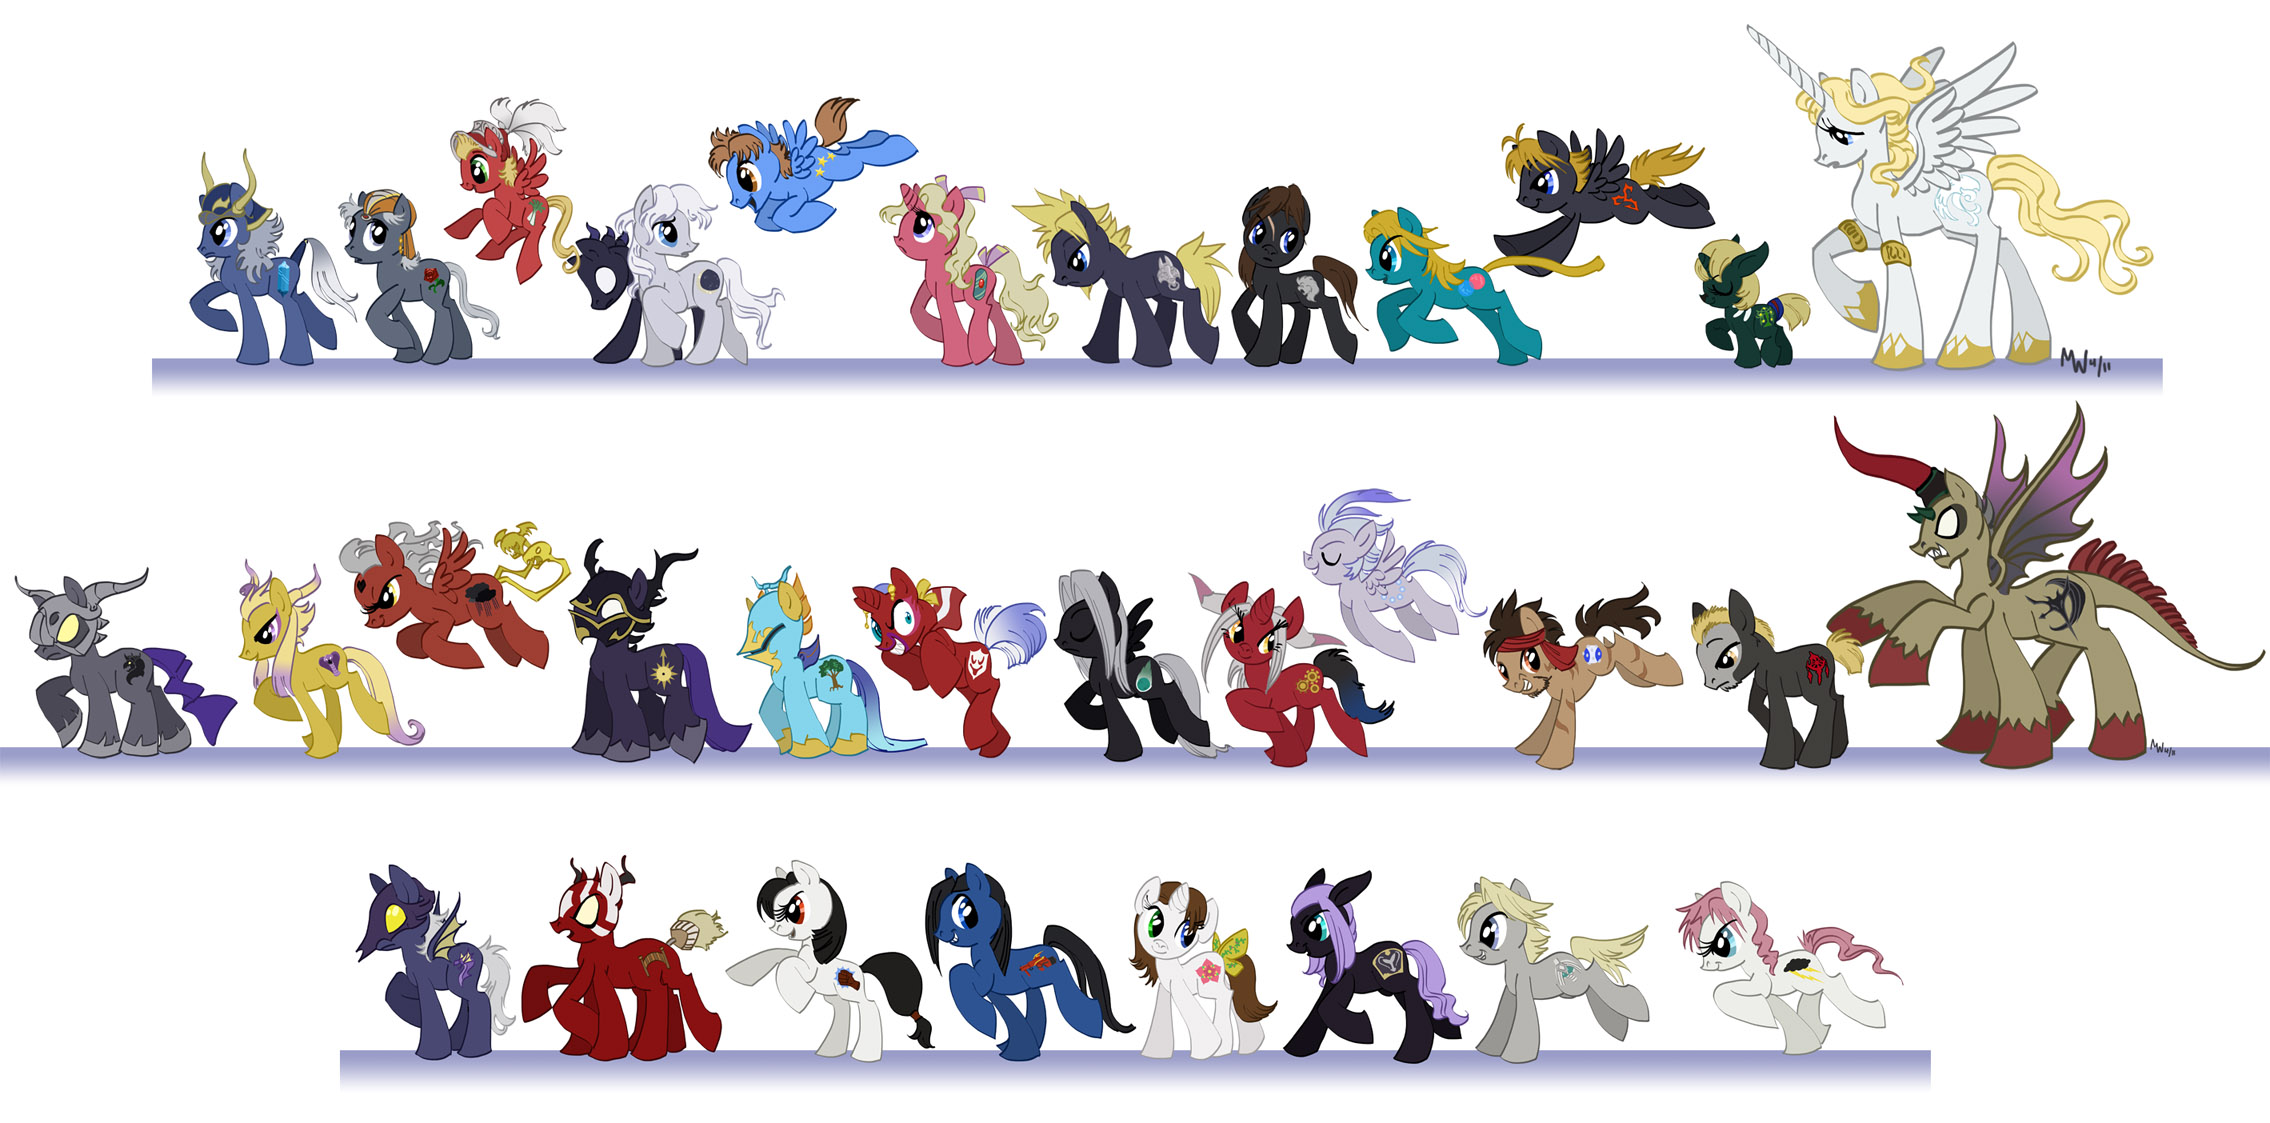 MLP - Dissidia 012 cast by LynxGriffin